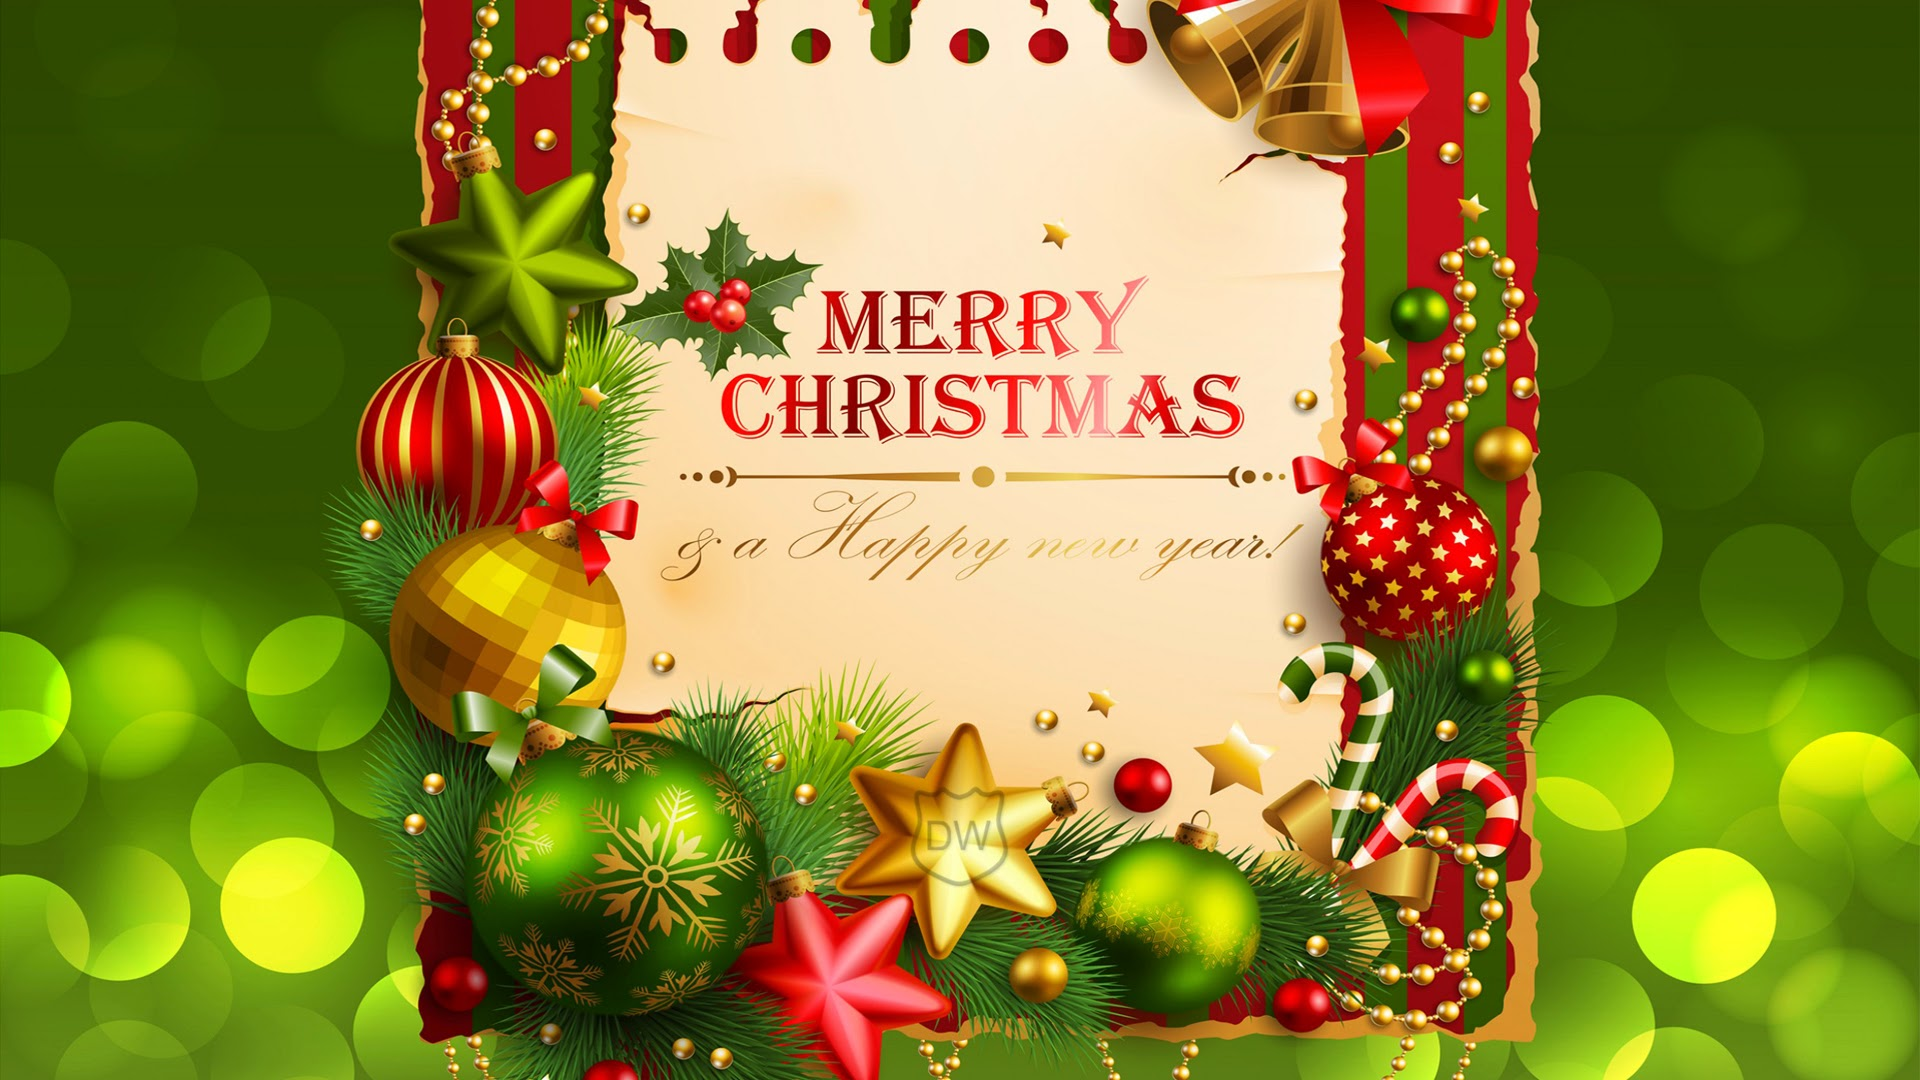 Merry Christmas Images, Wallpapers, Photos and Greetings